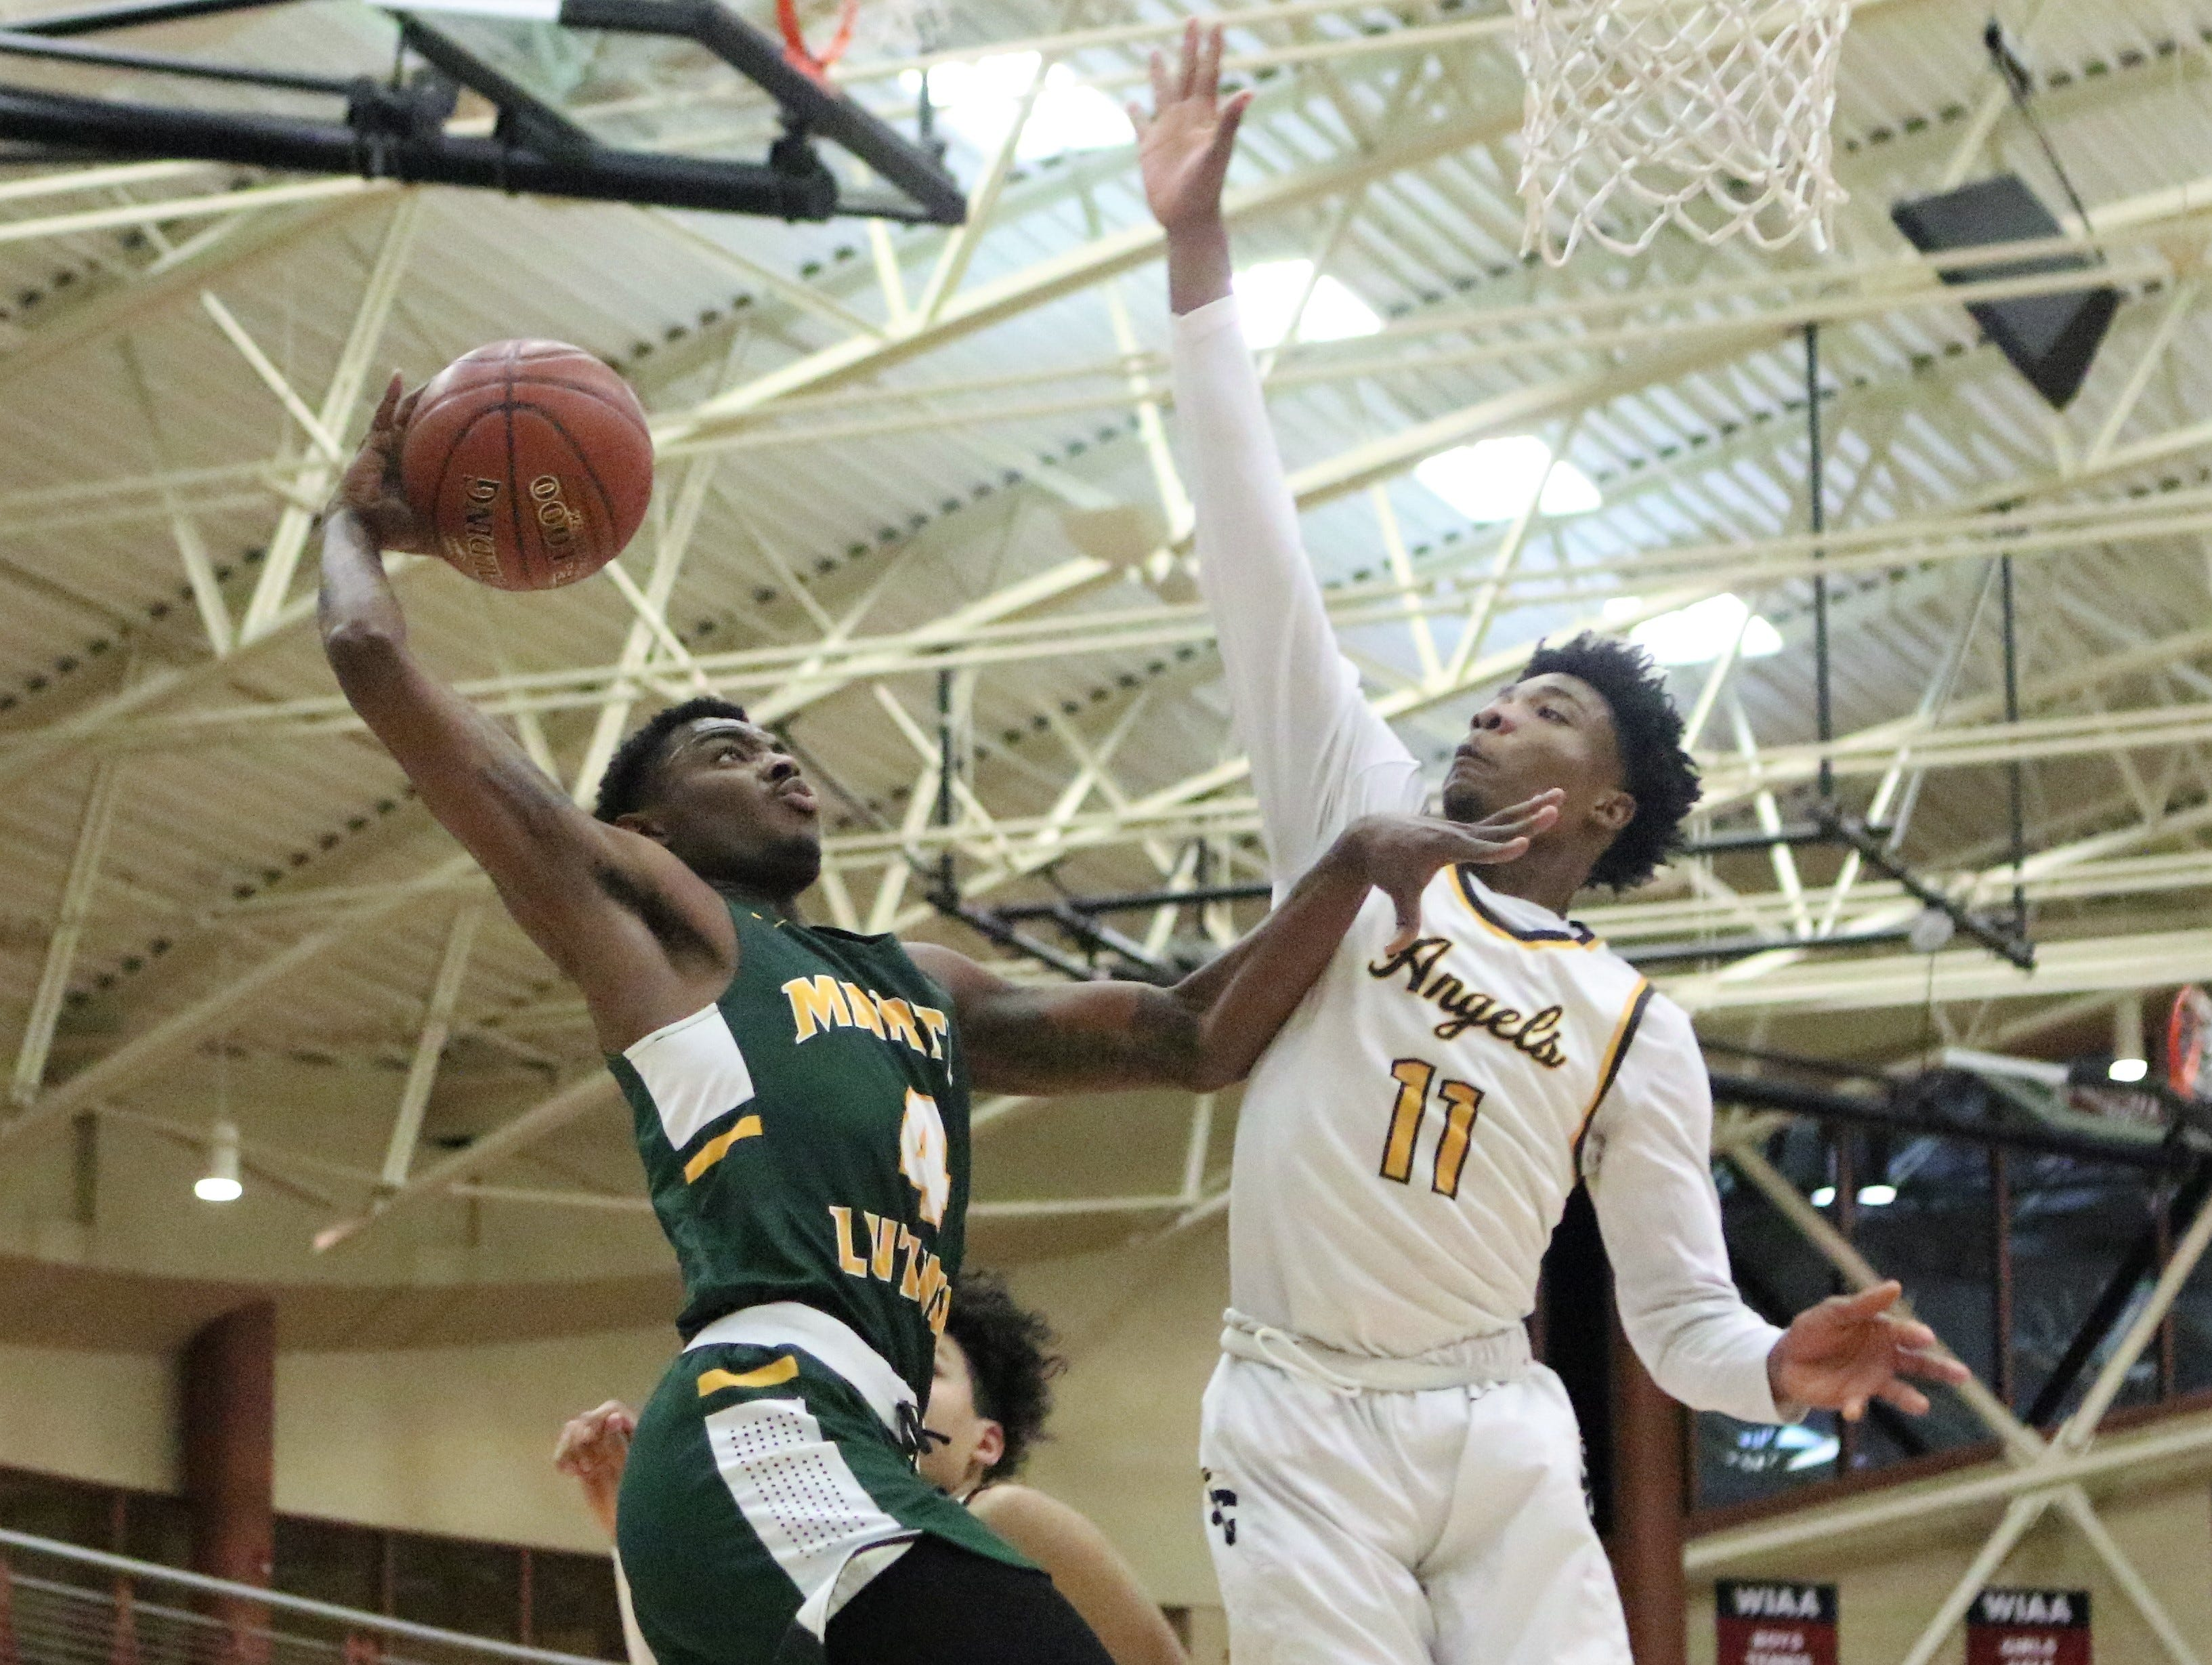 Martin Luther forward Xzavier Jones (left) attempts to go up for a dunk while defended by Racine St. Catherine's guard Tyrese Hunter during a WIAA sectional semifinal on March 7, 2019.